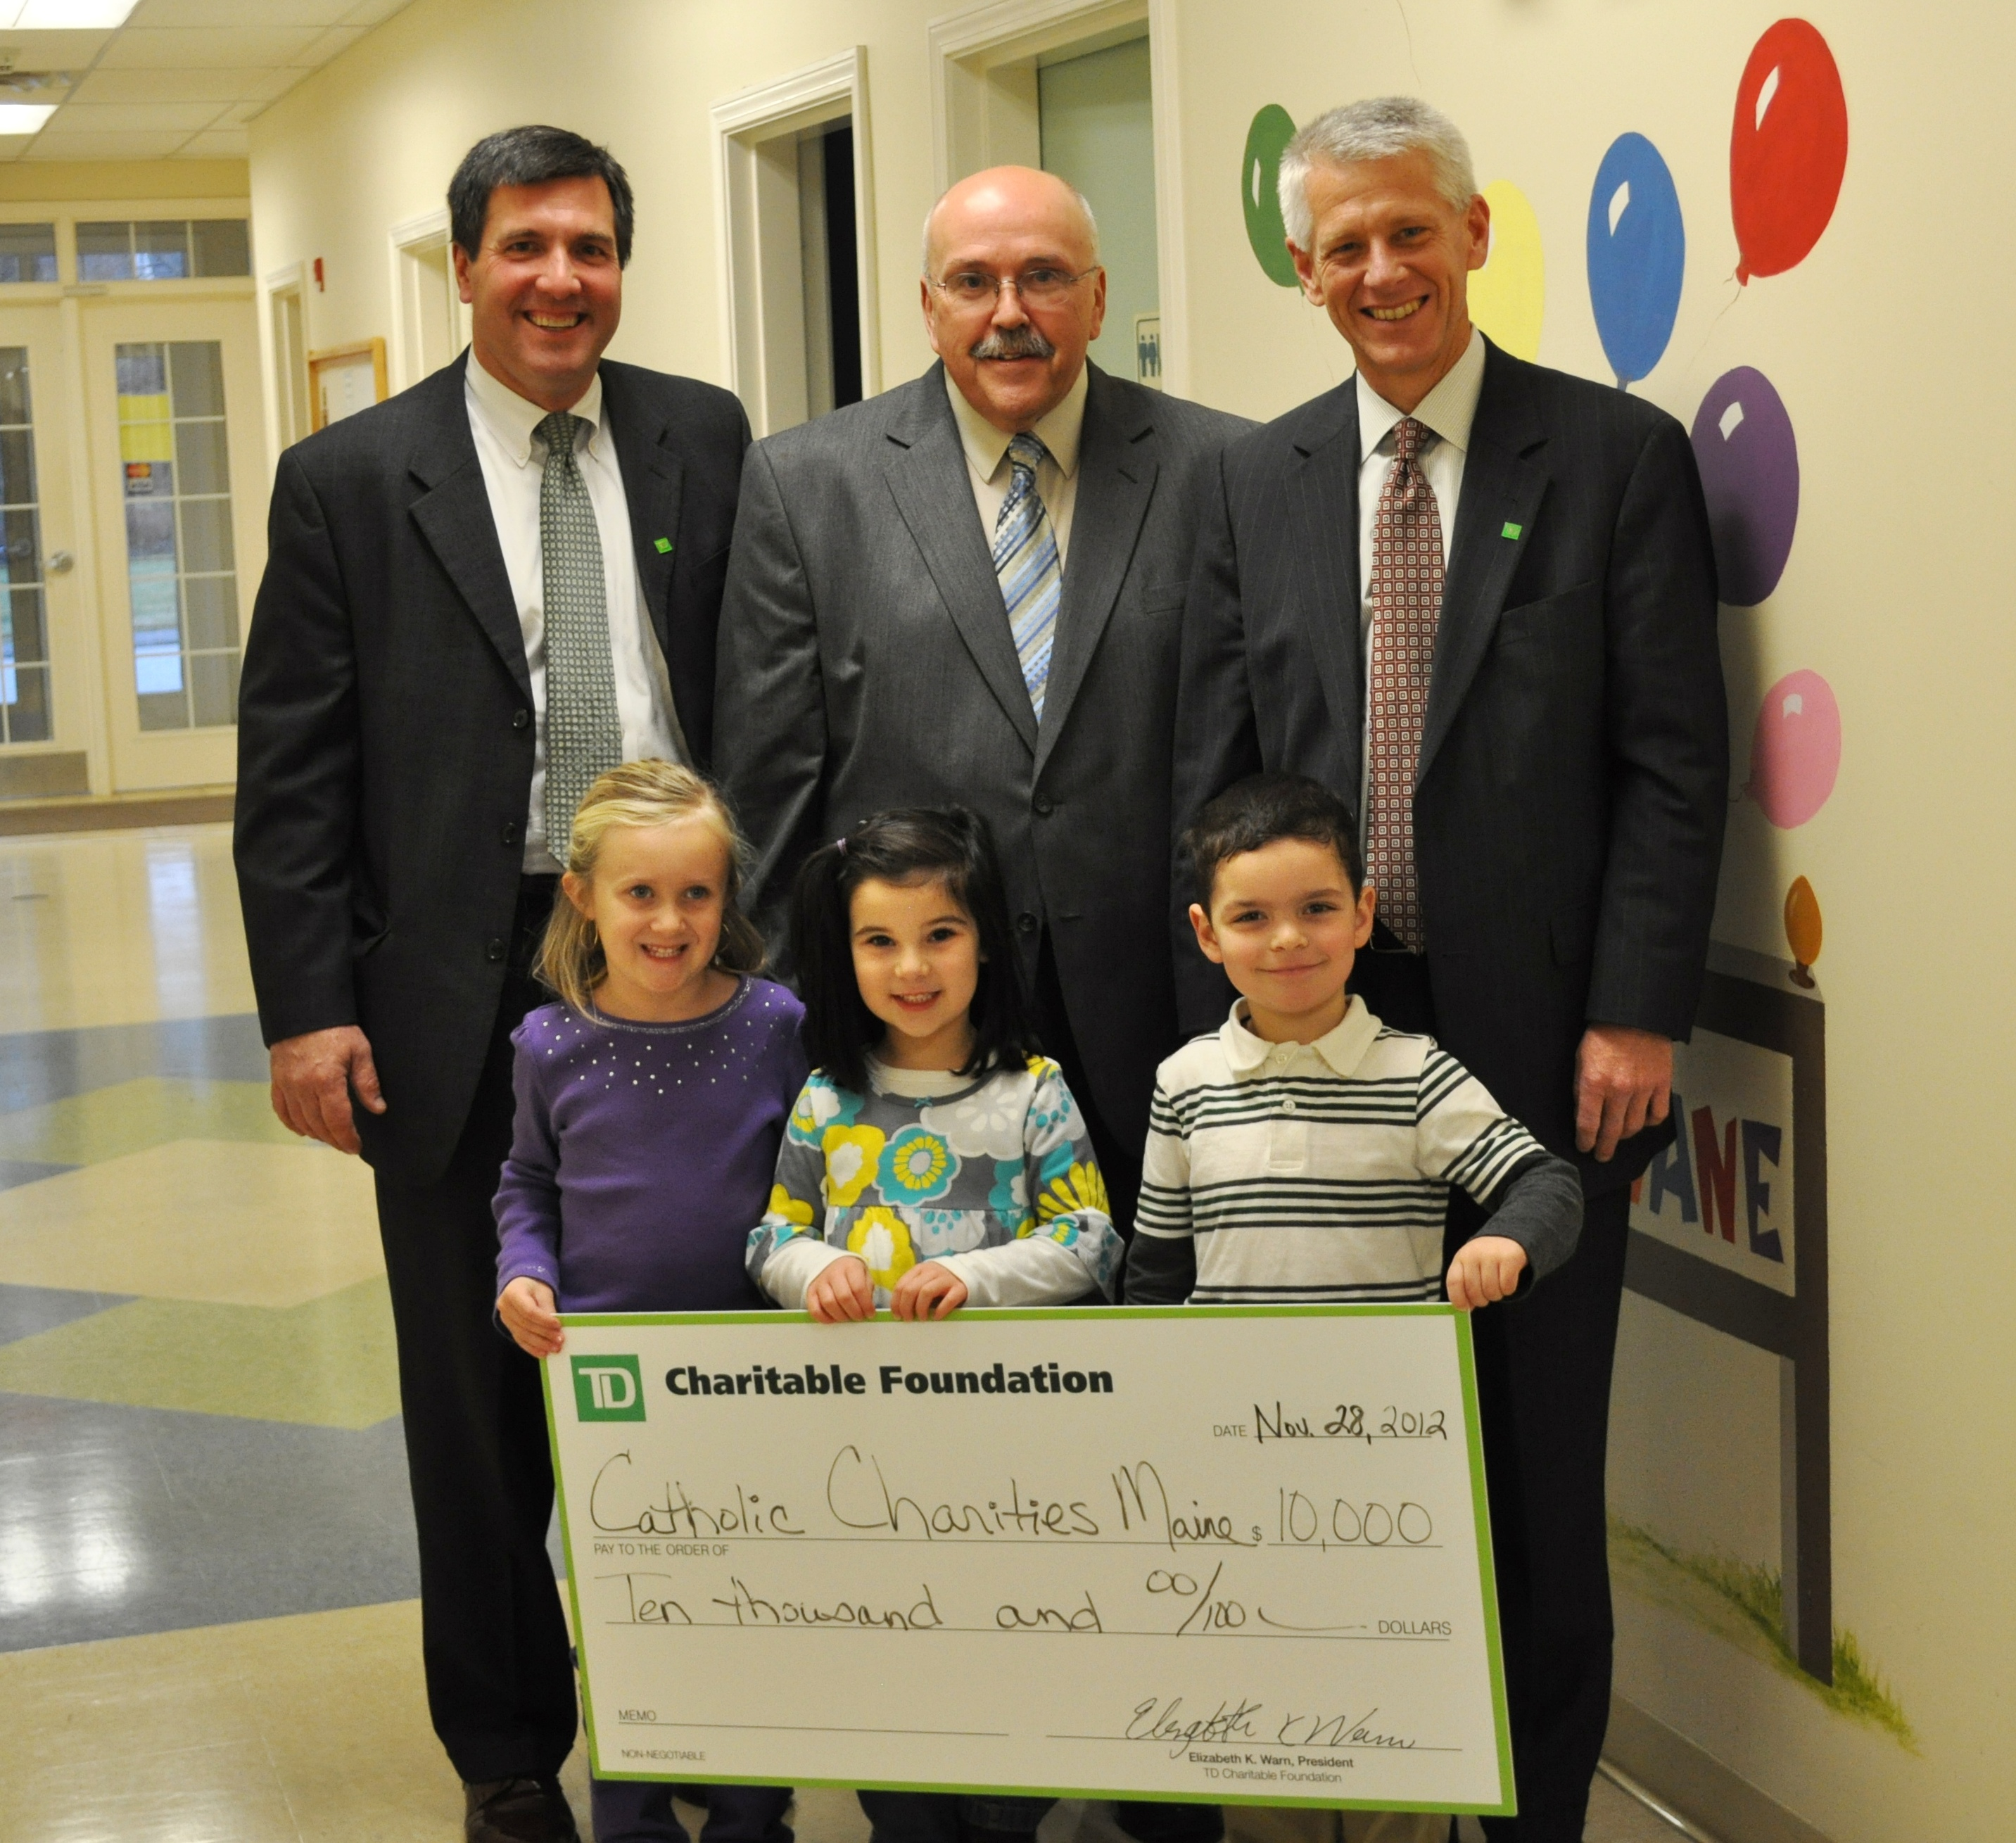 Blog - Quality Child Care Secured by TD Charitable